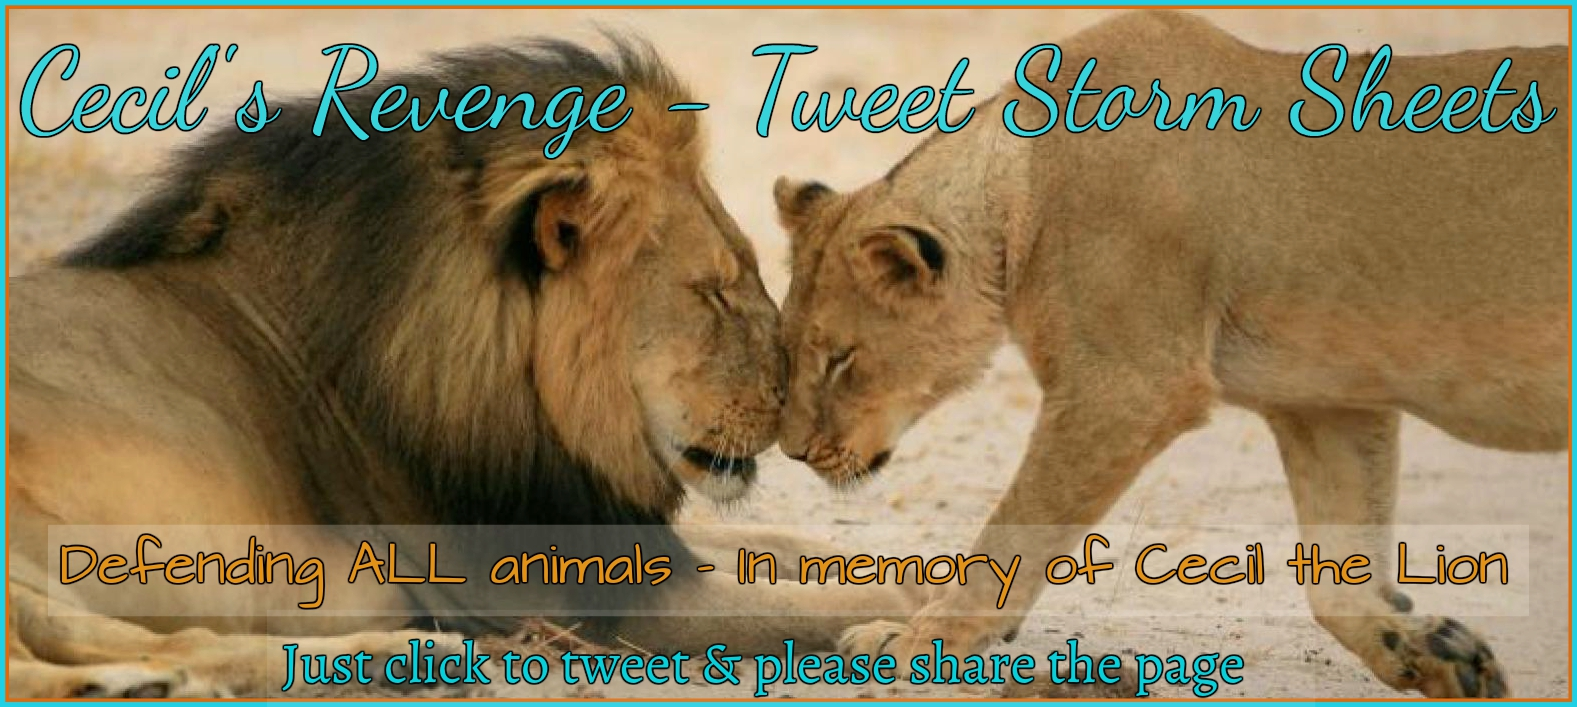 Cecil's Revenge Tweet Sheets – It's time to Storm!